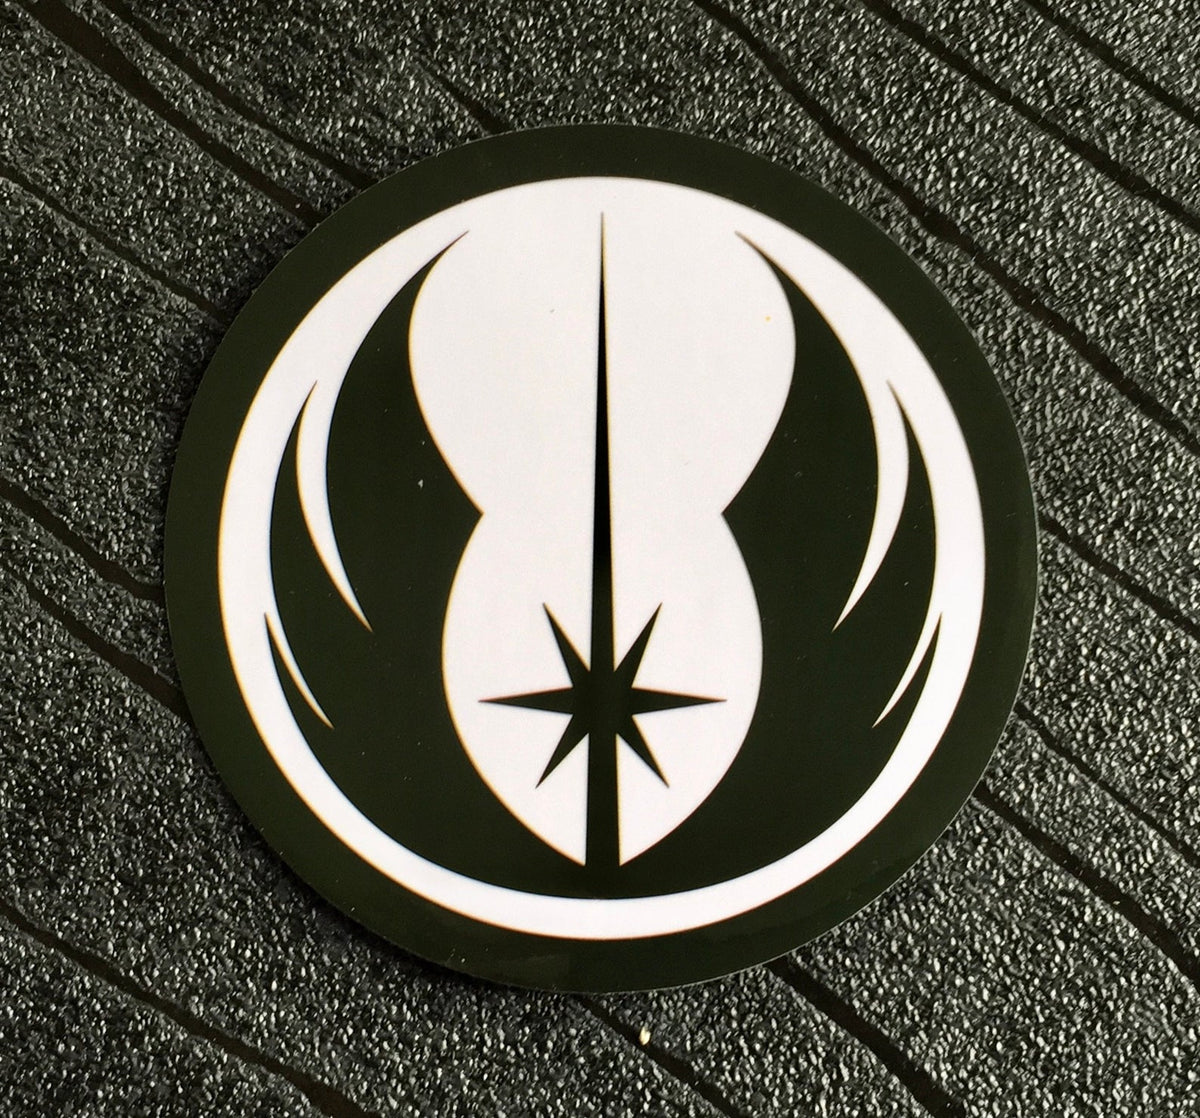 Star Wars Sticker Jedi Order Waterproof and UV resistant PVC sticker colour Black (75mm)